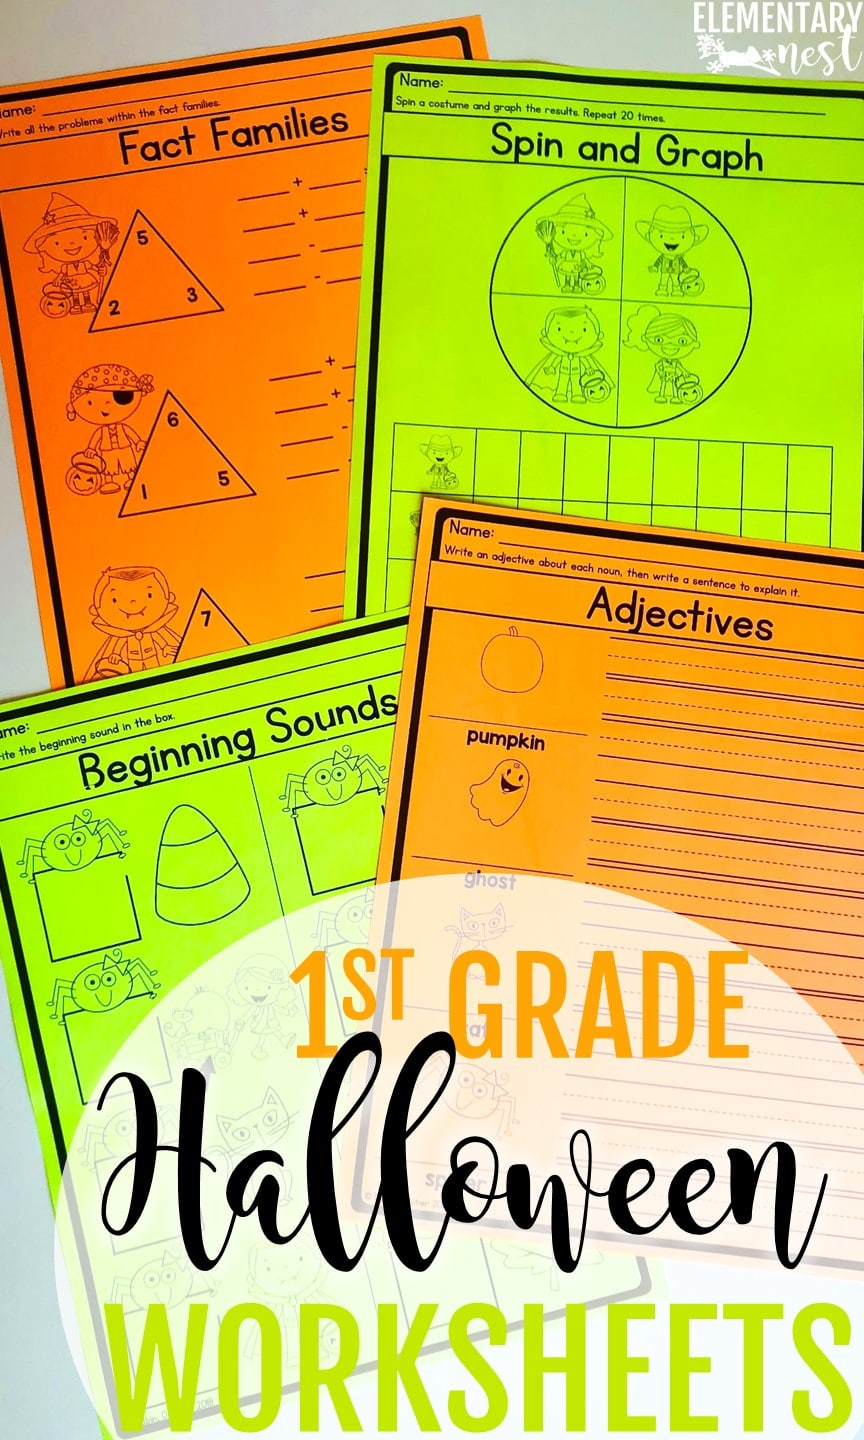 1st grade Halloween themed worksheets for October activities for primary teachers.